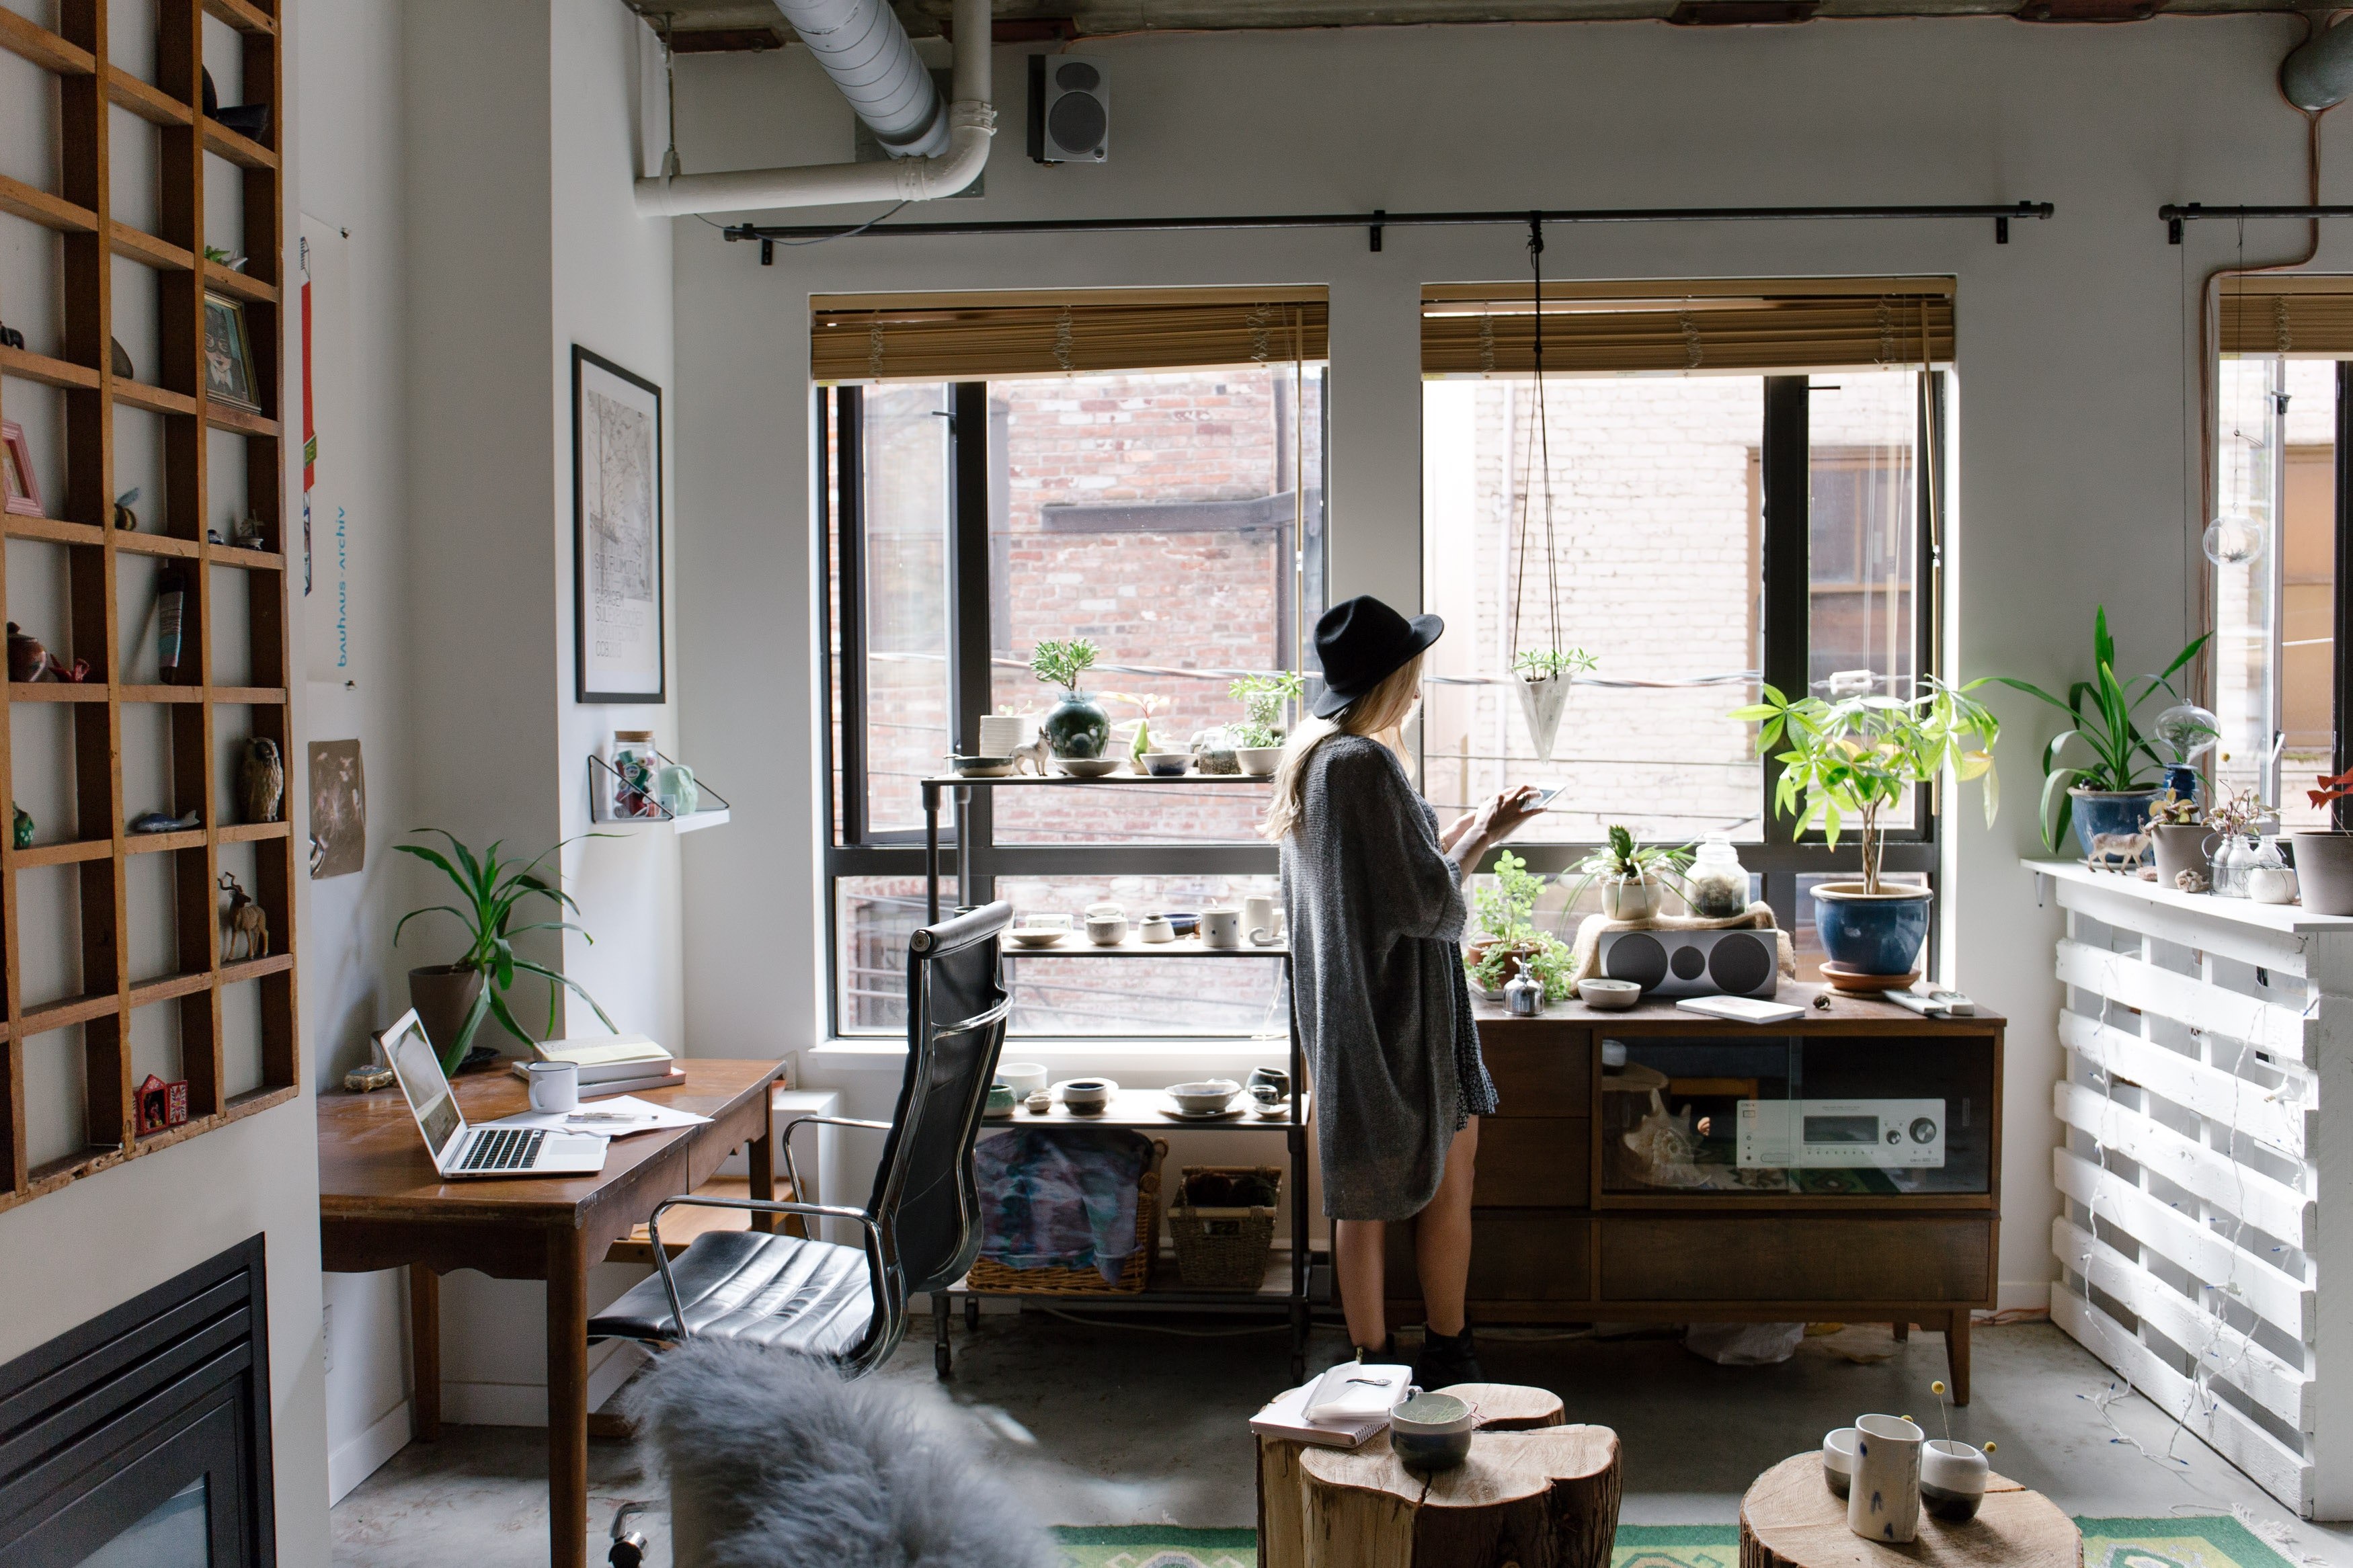 A photo of a woman in an apartment